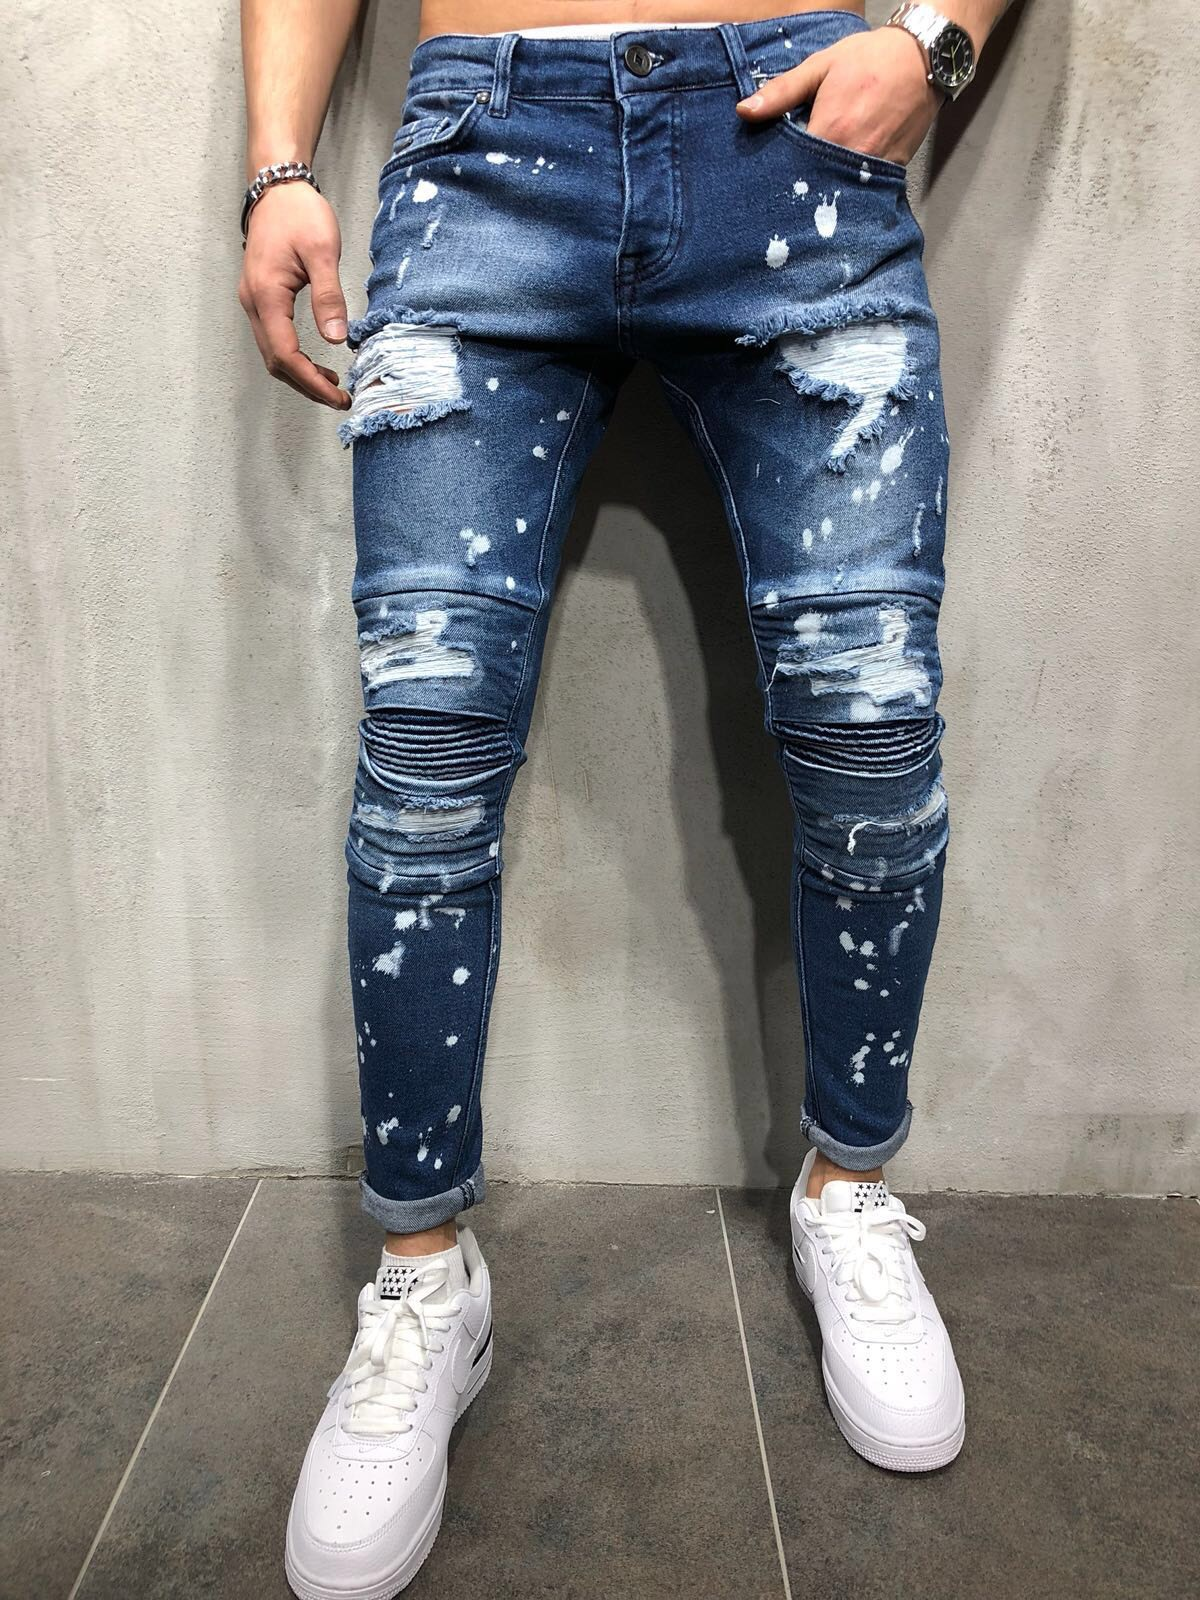 MEN'S WEAR Europe And America High Street Slim Fit Elasticity Jeans With Holes Paint Spraying Faded Trousers Pleated Skinny Pant